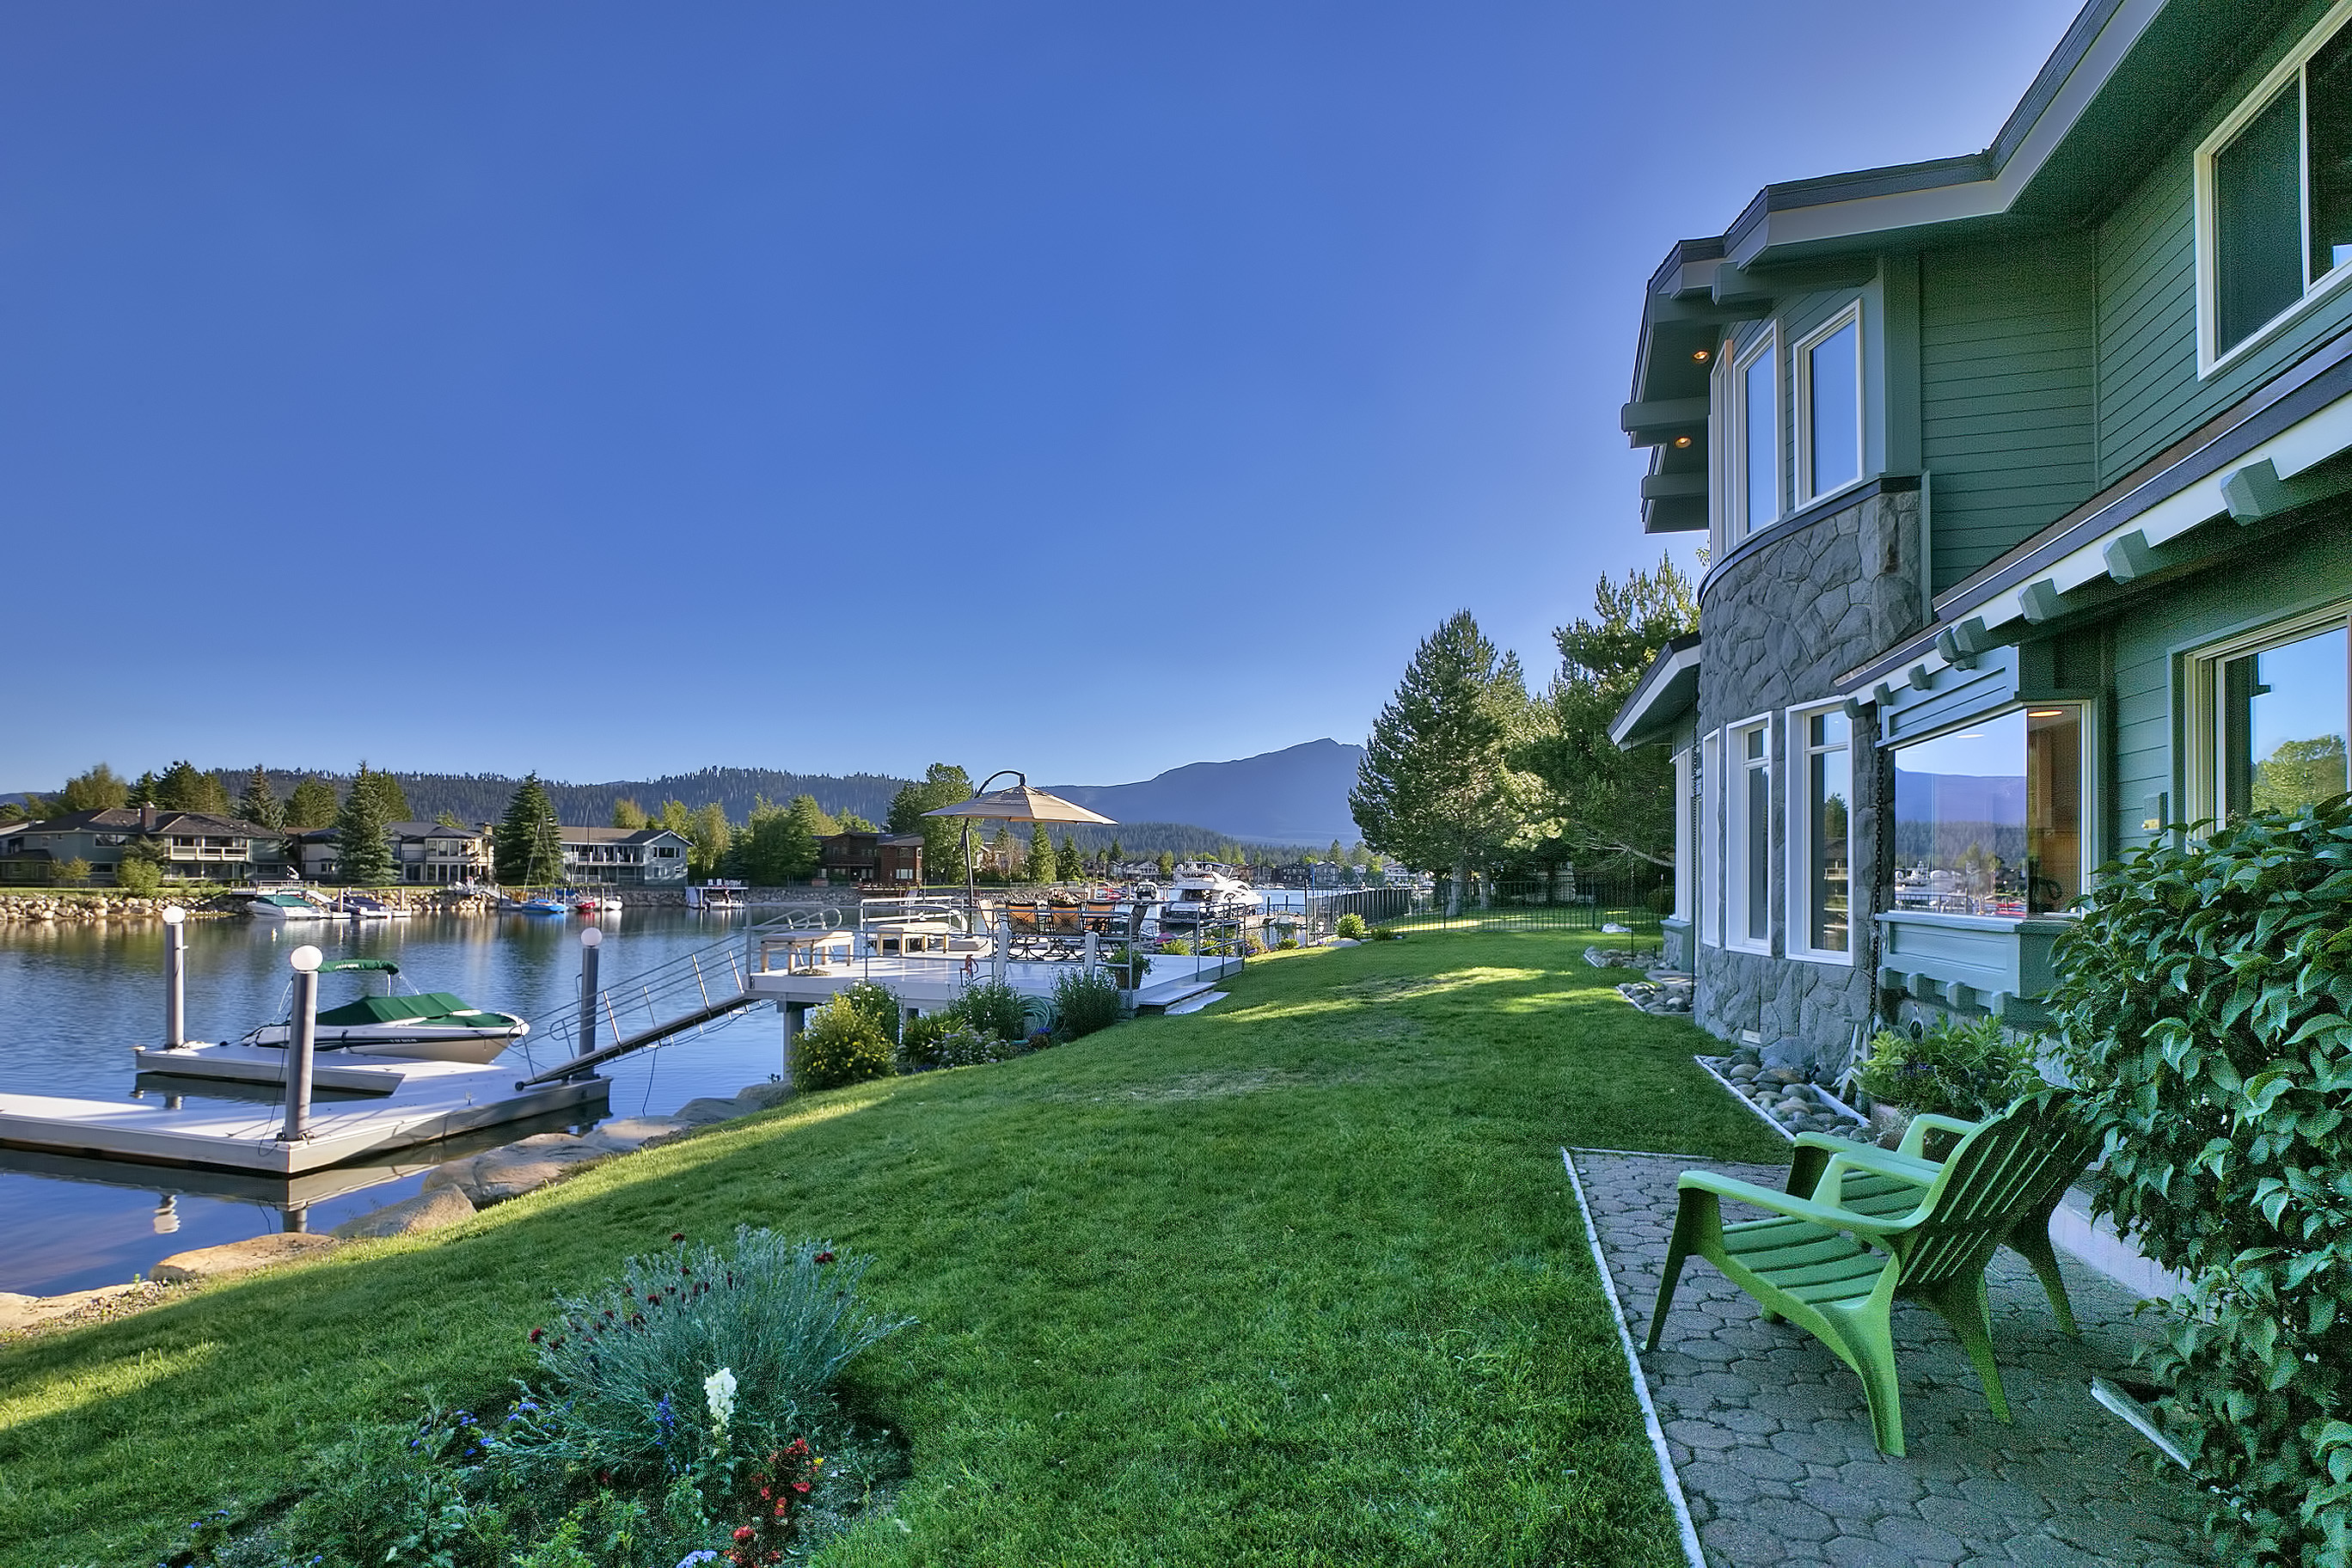 Single Family Home for Sale at 282 Beach Drive South Lake Tahoe, California, 96150 United States